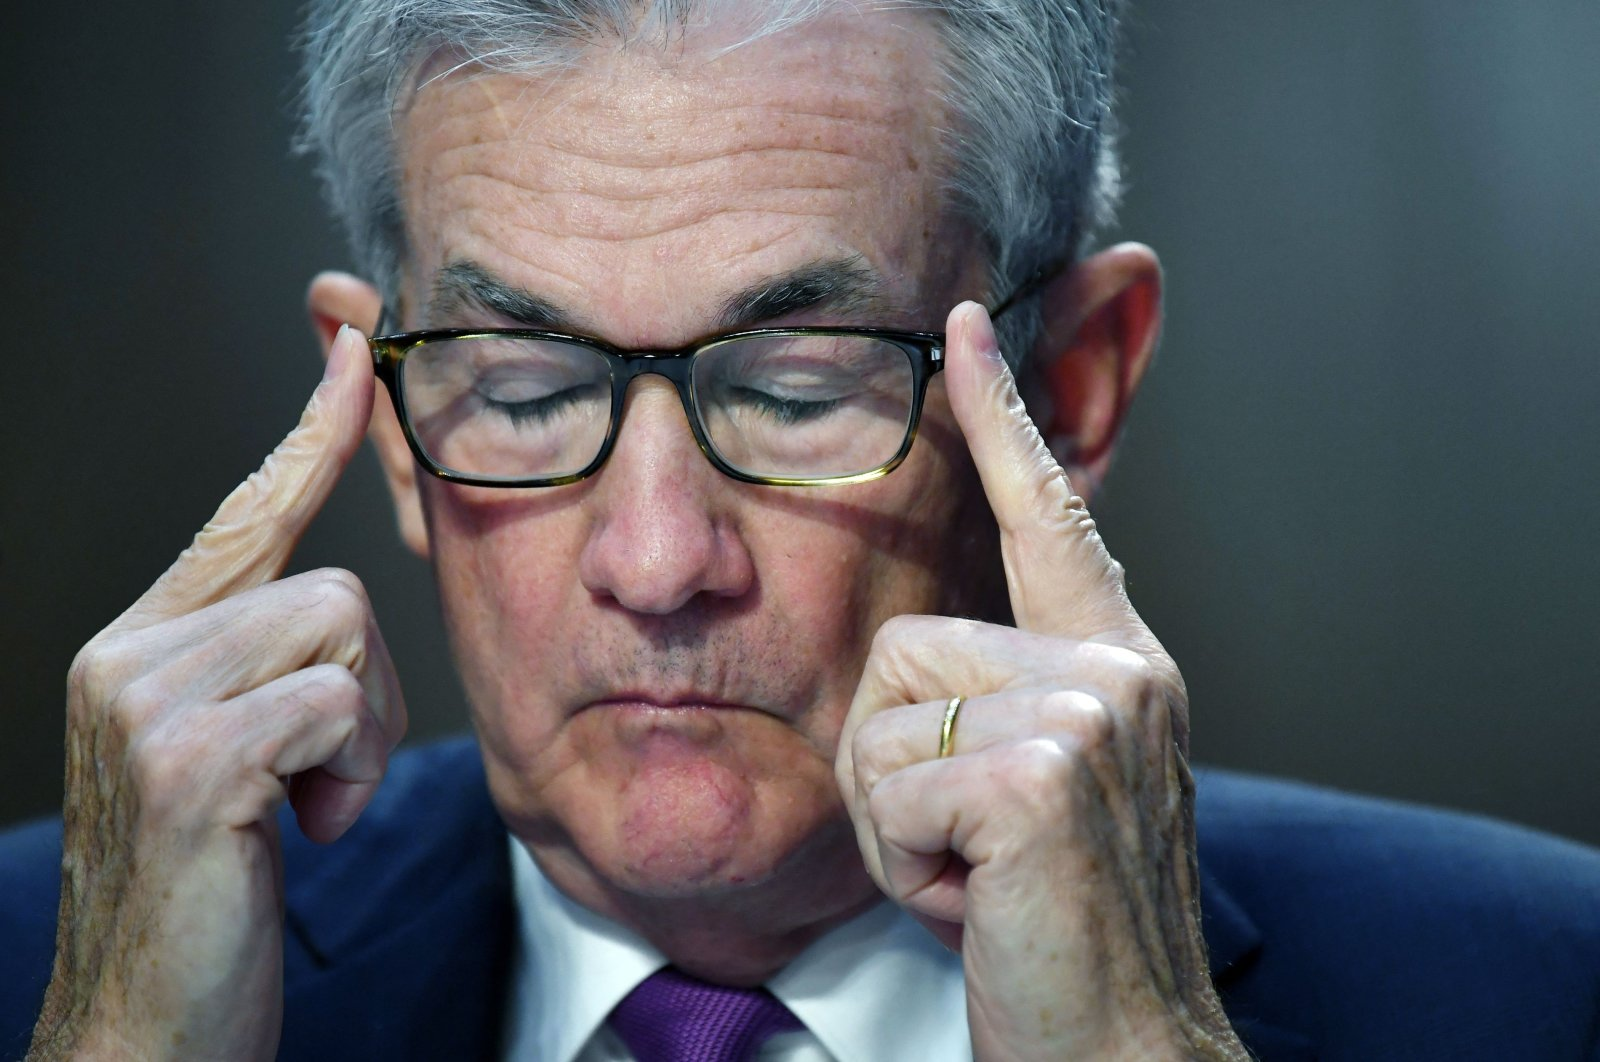 Federal Reserve Chair Jerome Powell testifies during a Senate Banking, Housing and Urban Affairs Committee hearing on the CARES Act, at the Hart Senate Office Building in Washington, D.C., U.S., Sept. 28, 2021. (AFP Photo)